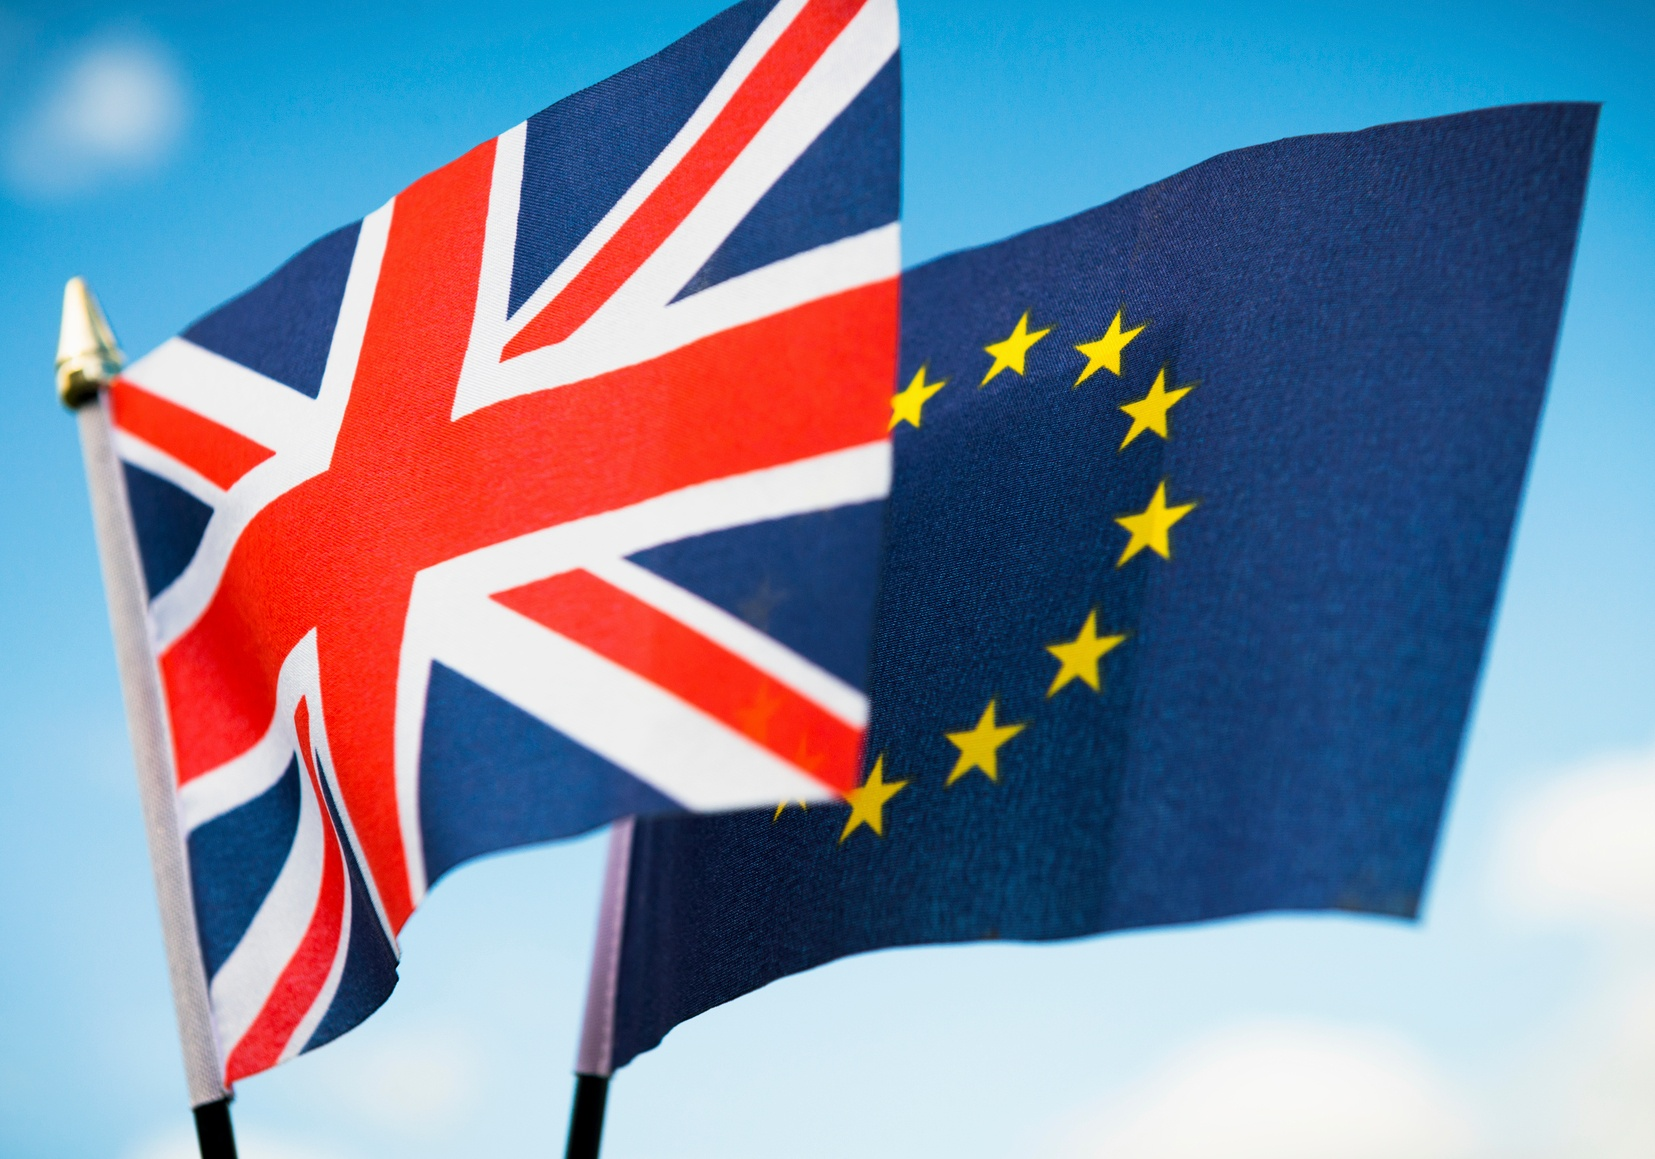 The Brexit and Trademark Rights